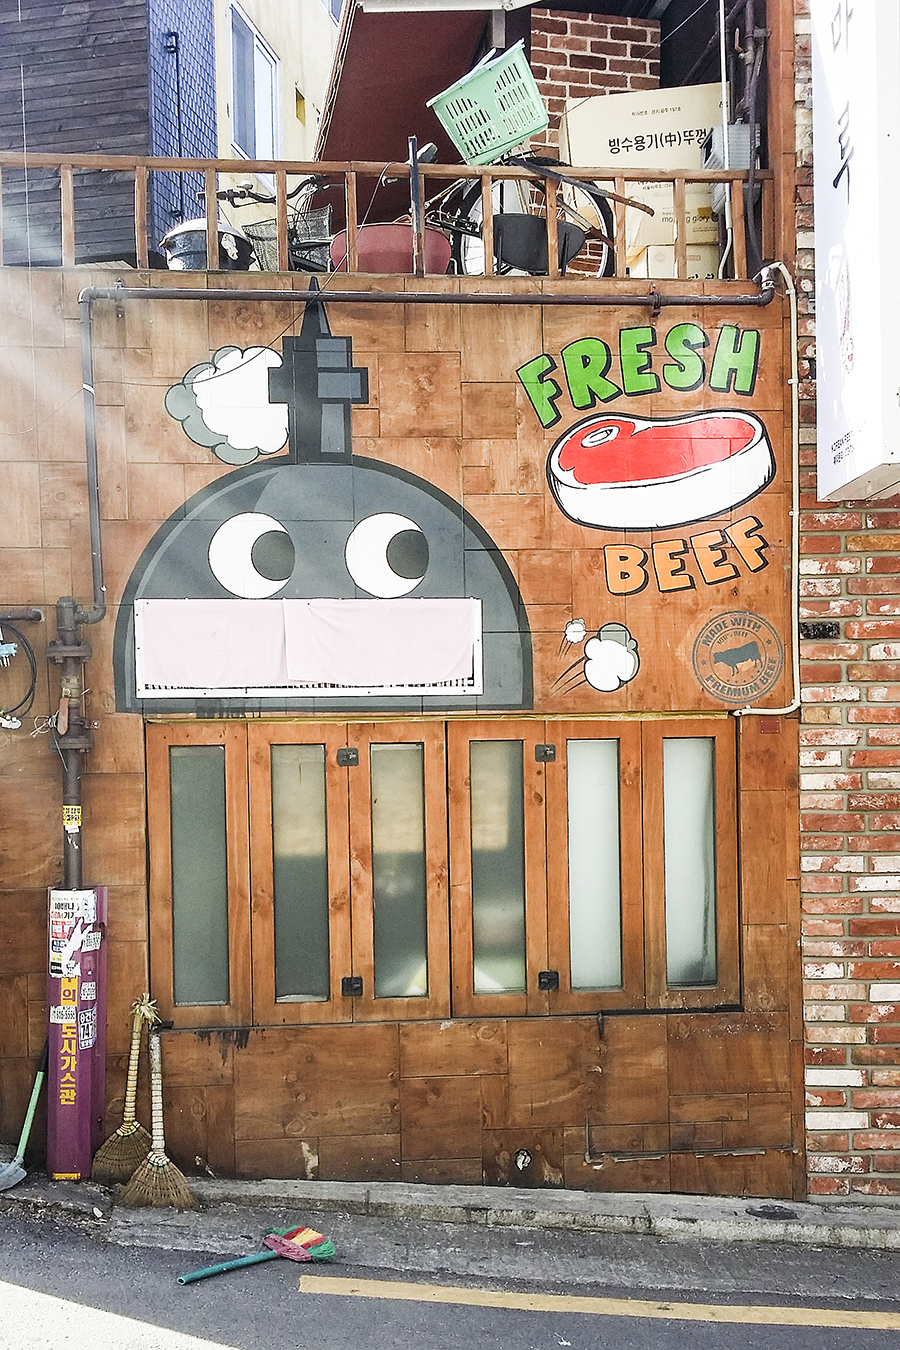 Robot mural on a shop facade at Zaemiro Seoul Comics Road, South Korea.